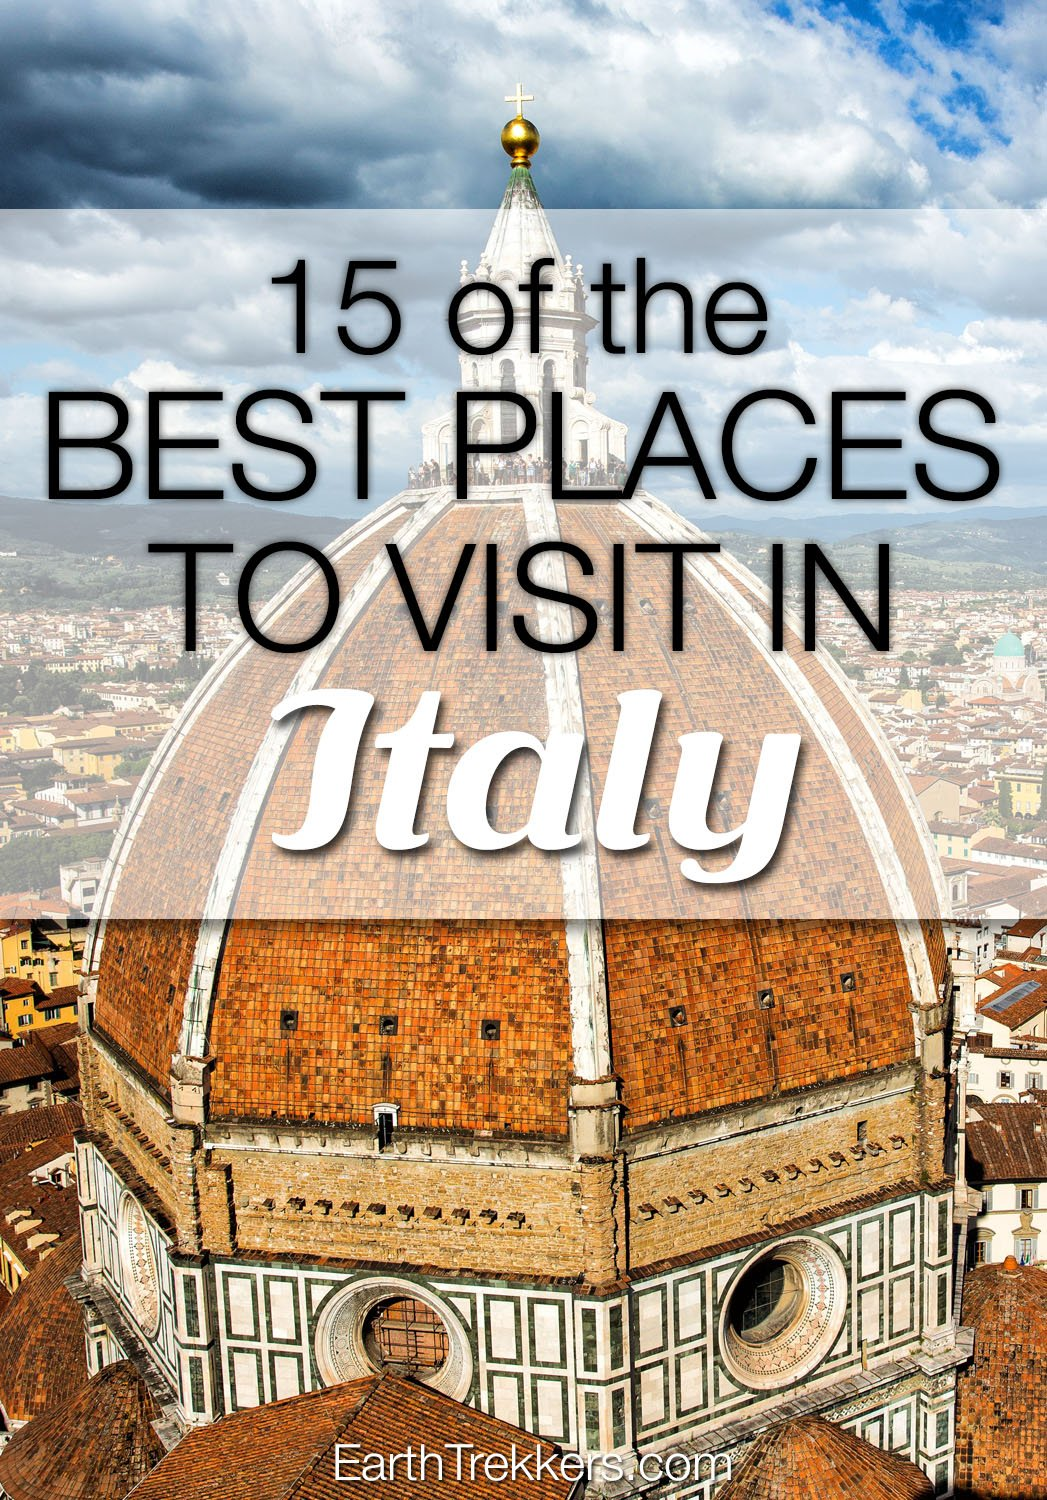 15 of the best places to visit in italy earth trekkers for Best place to visit italy